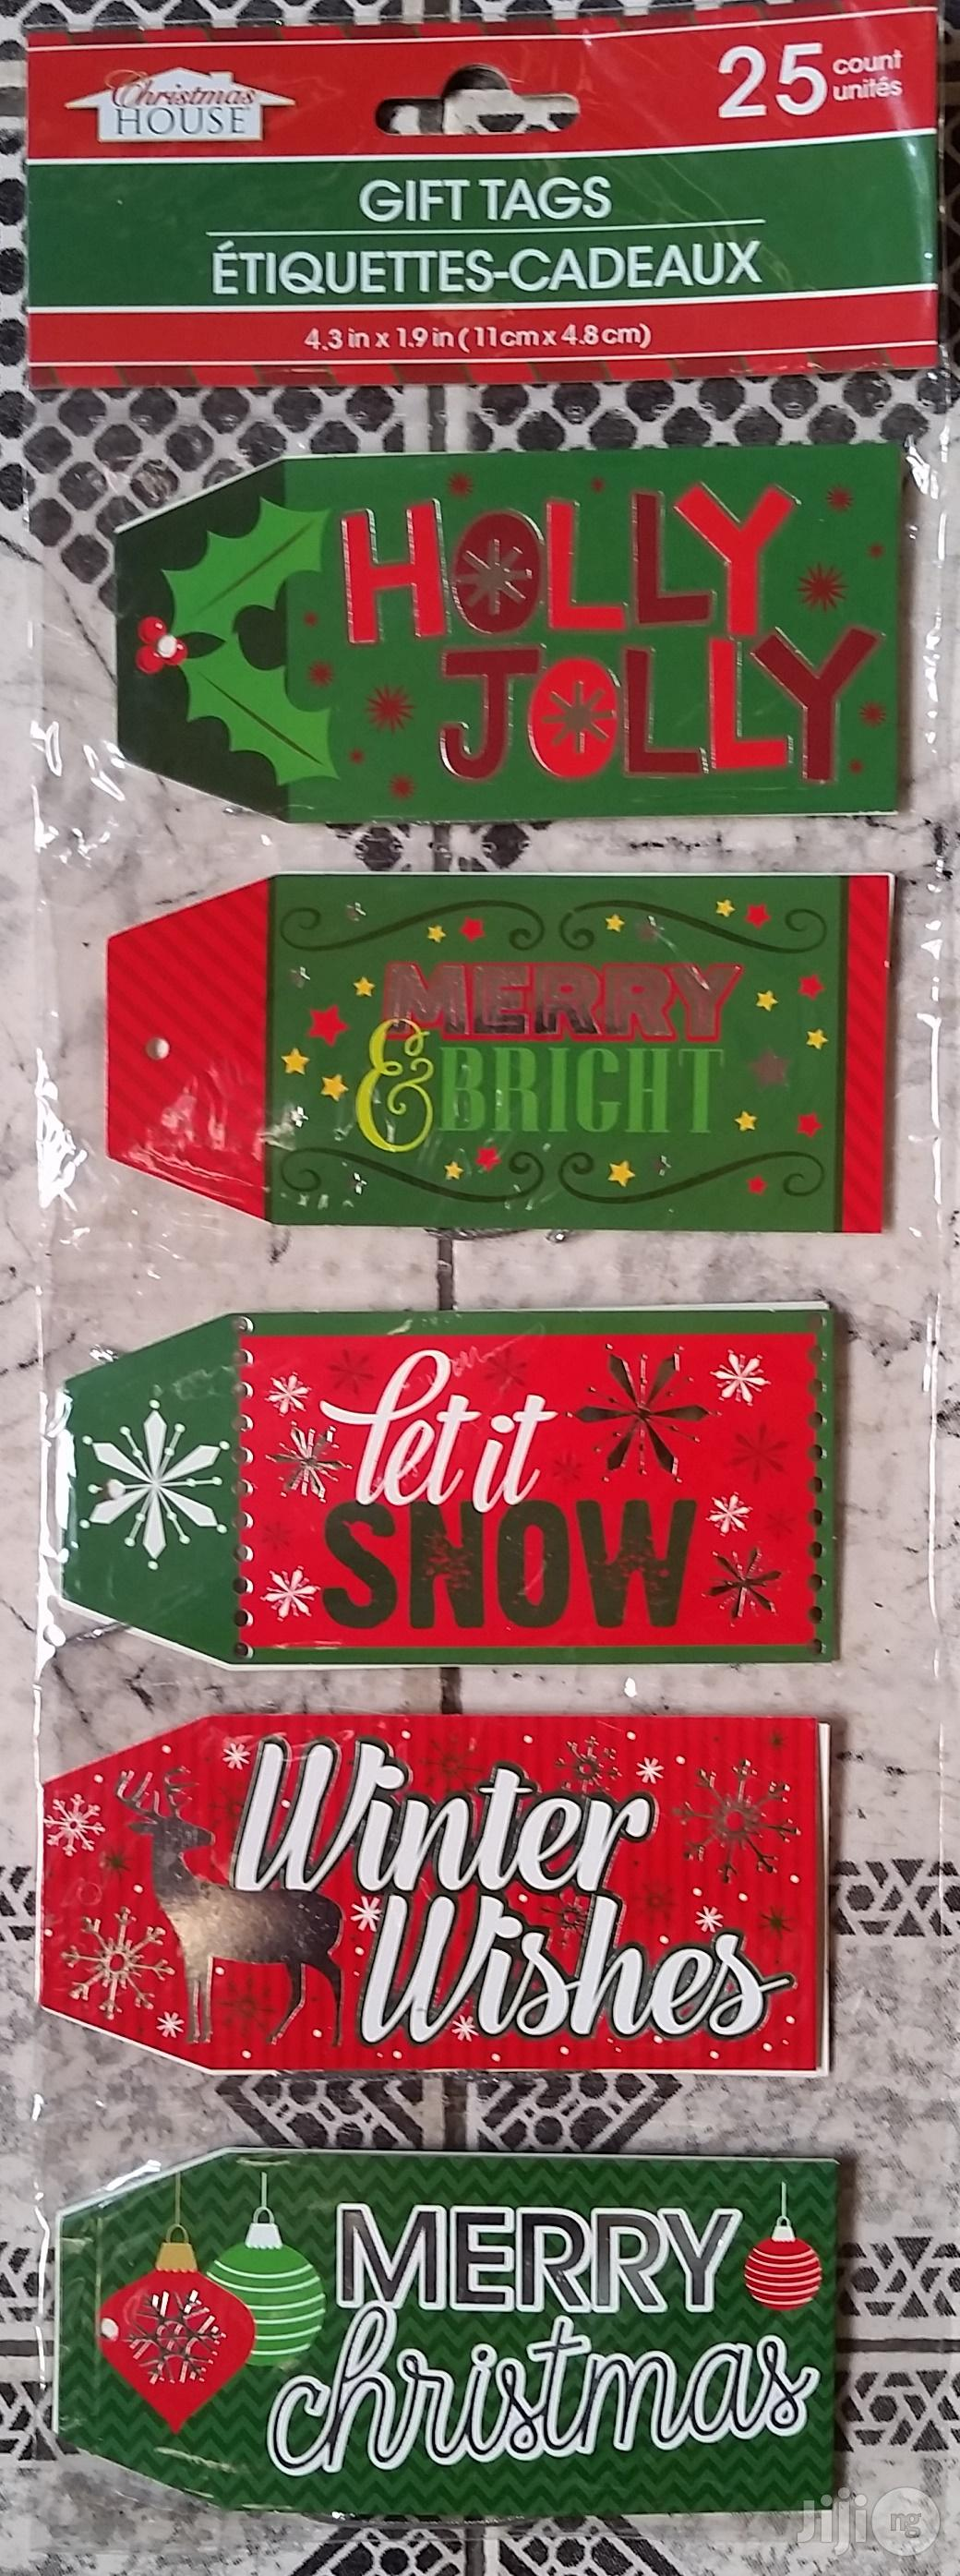 Archive: Gift Tags Selection